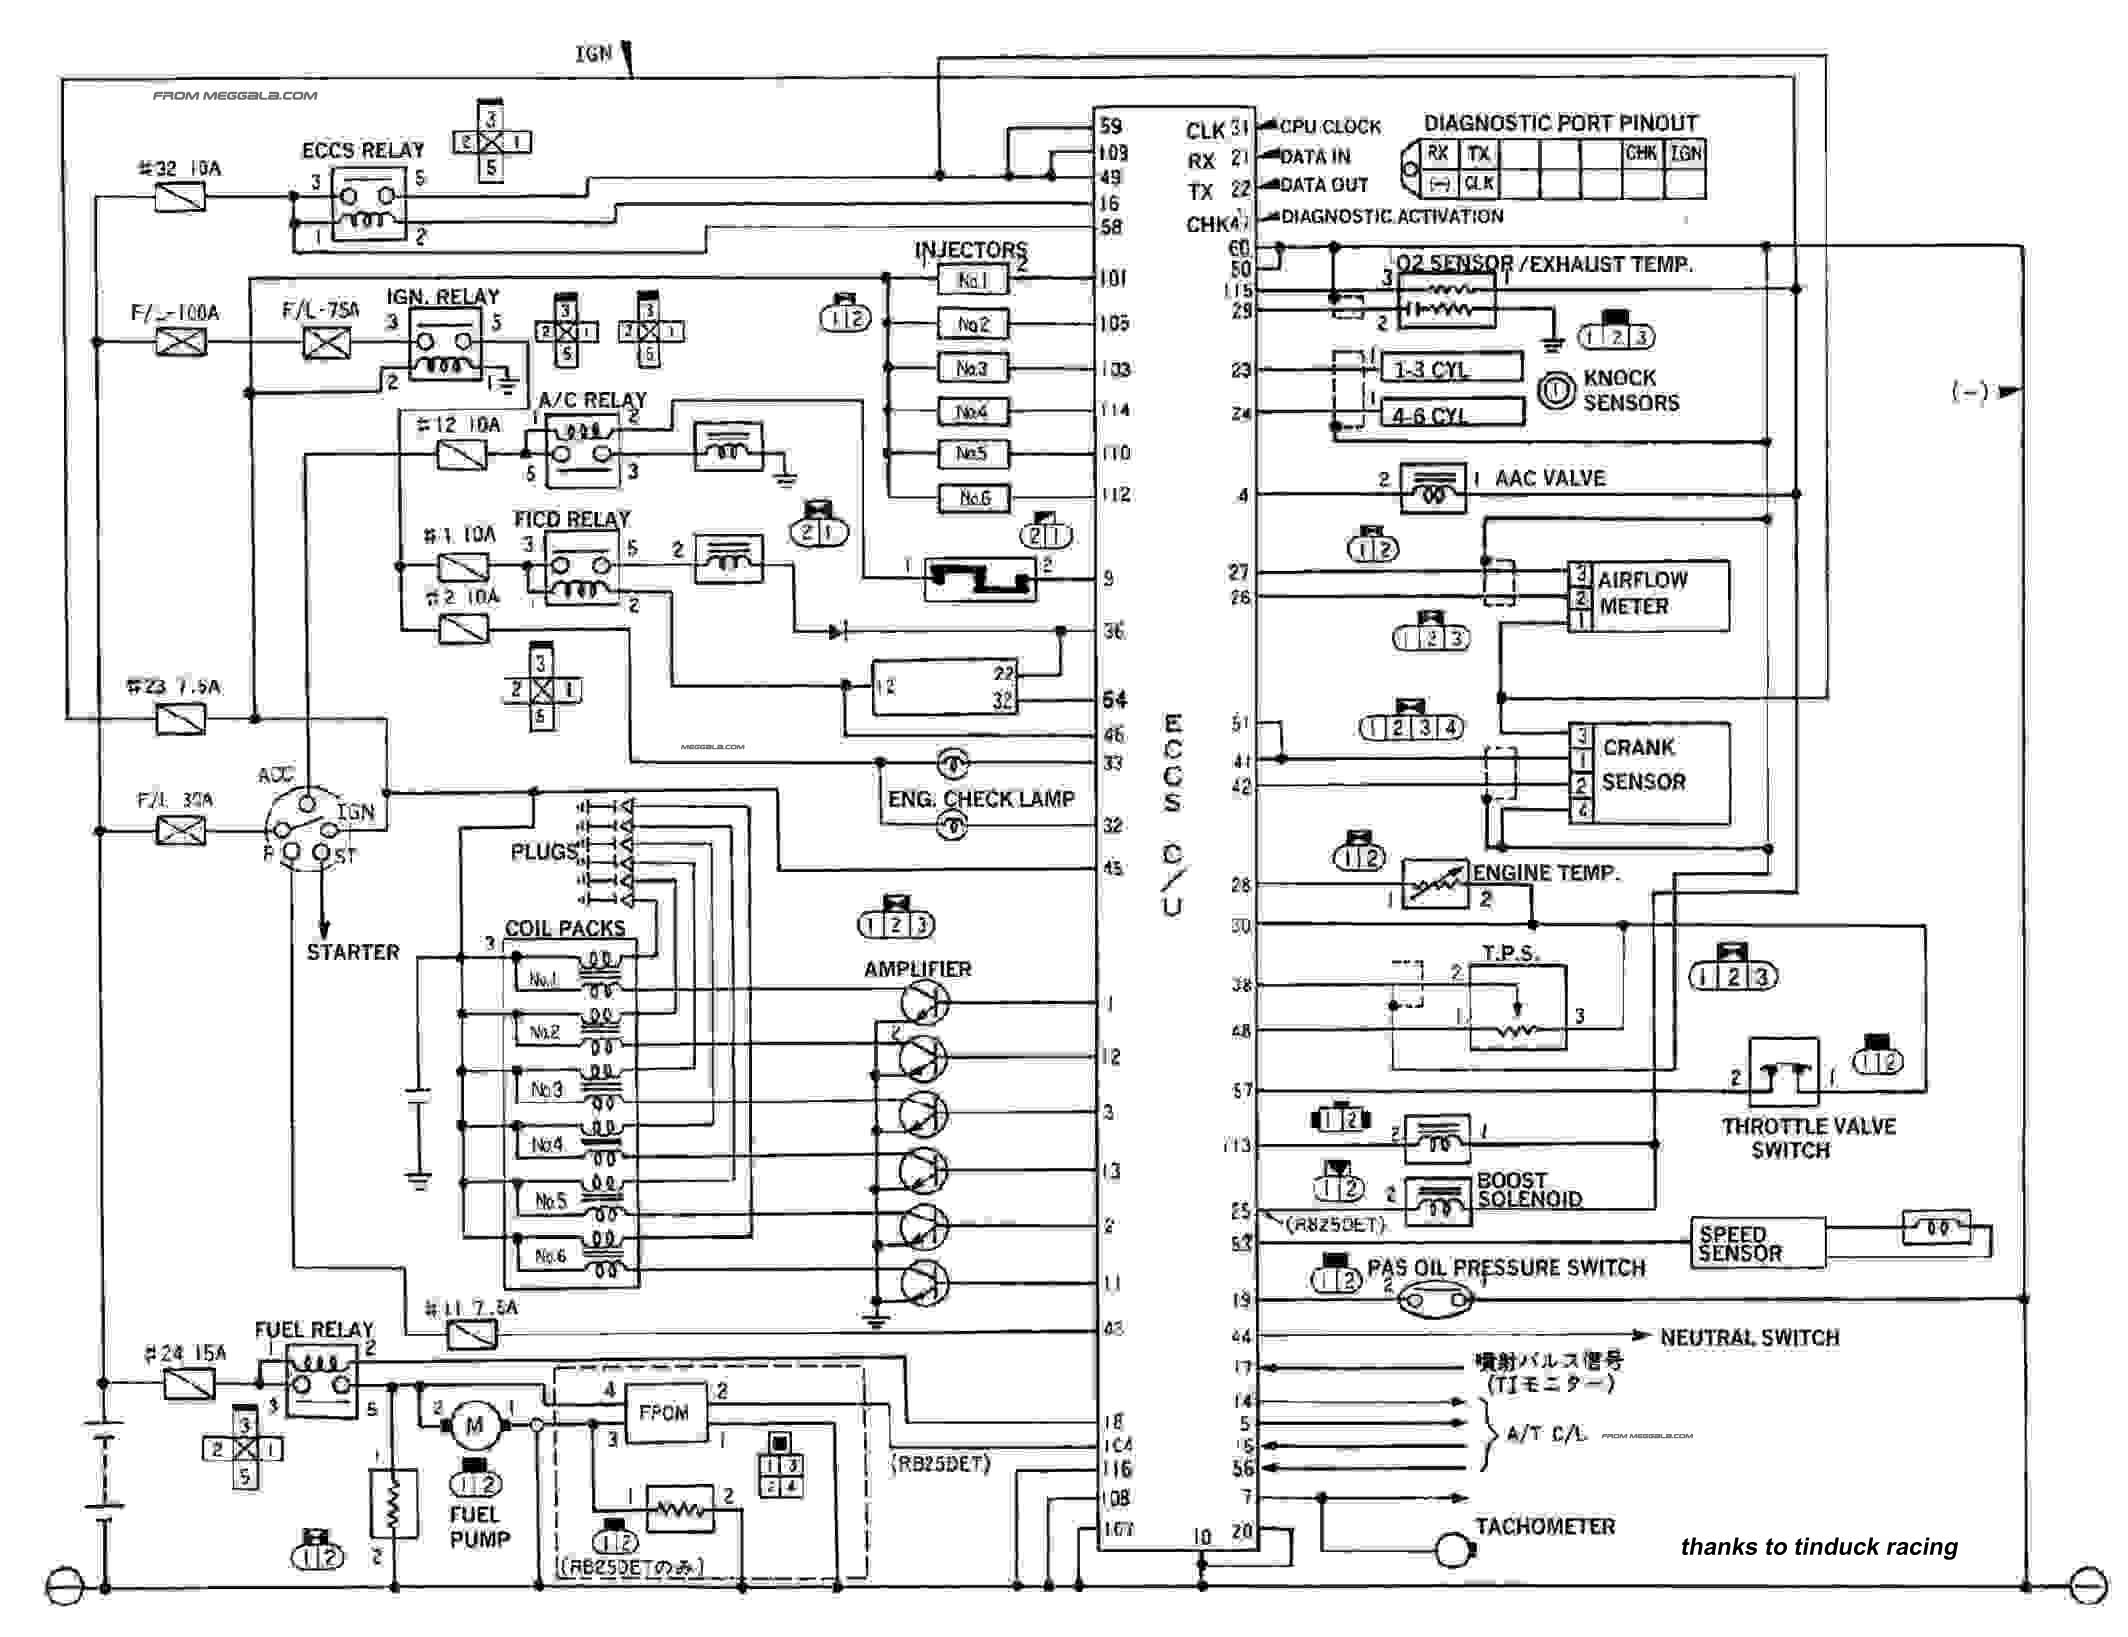 Manuals madnesshw on 2012 dodge challenger wiring diagram